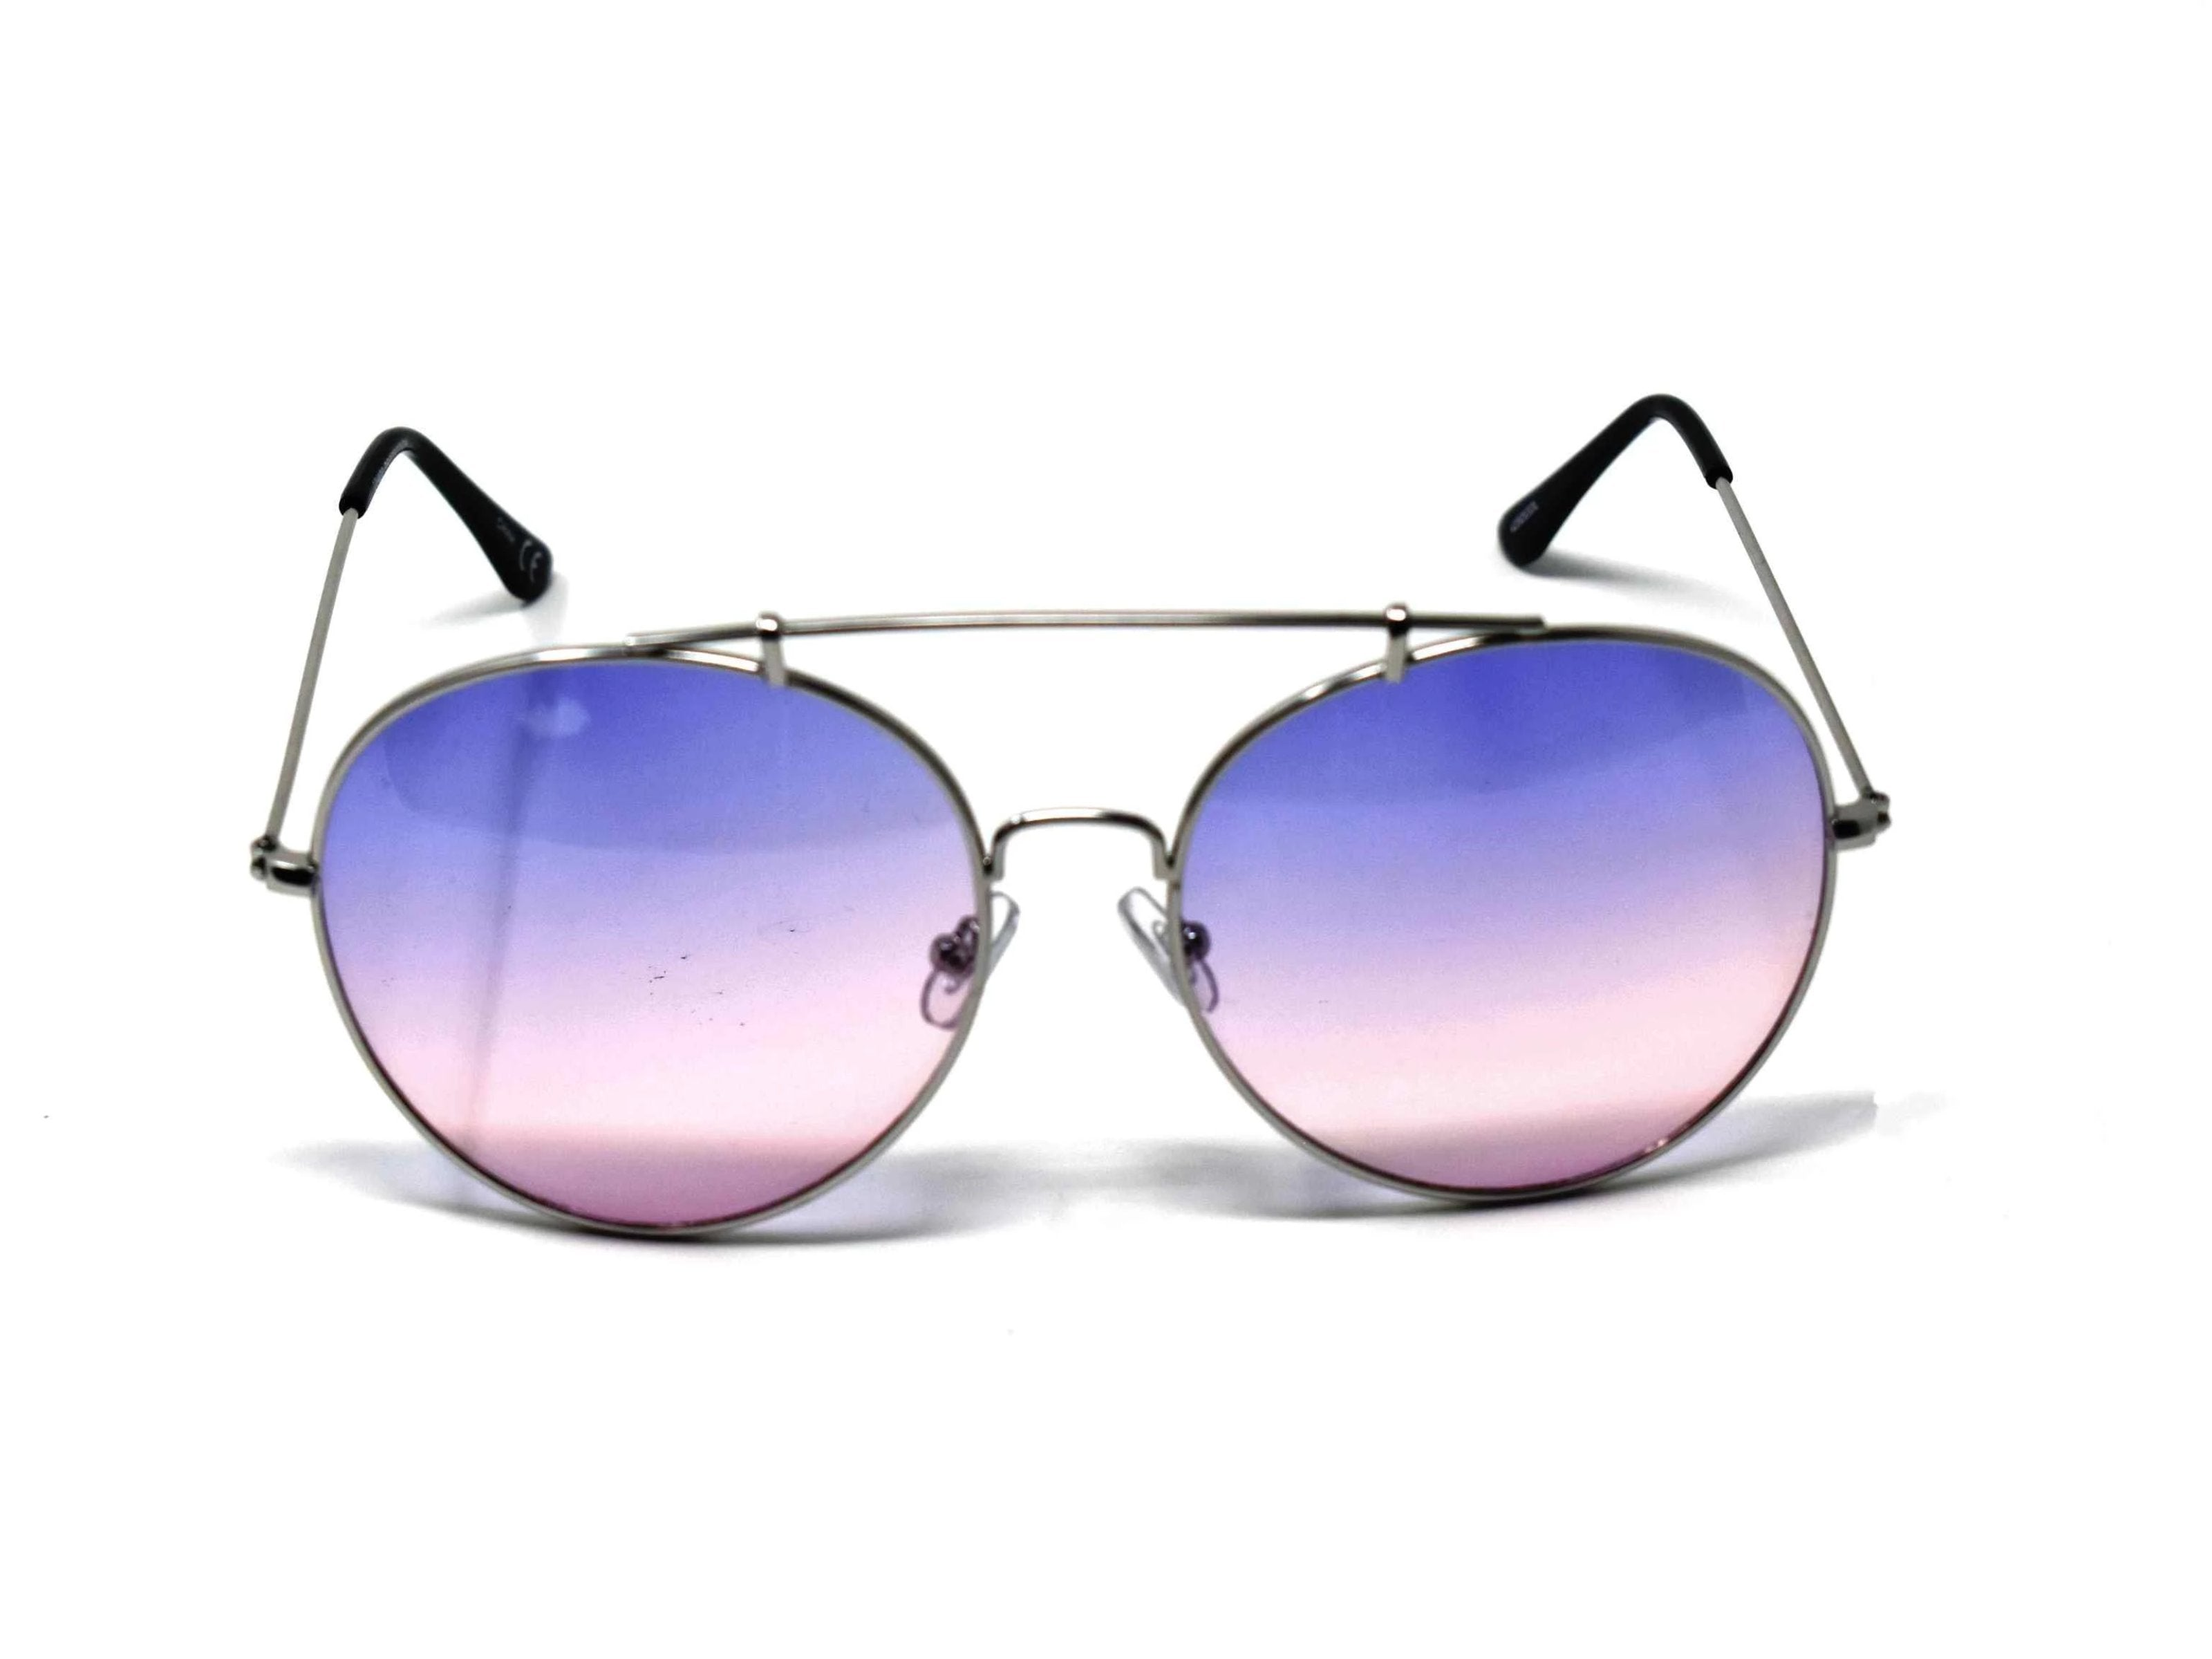 Va Va Voom will be consistently heard in these Vervain silver frame aviator Purple and Pink ombre lens sunglasses.